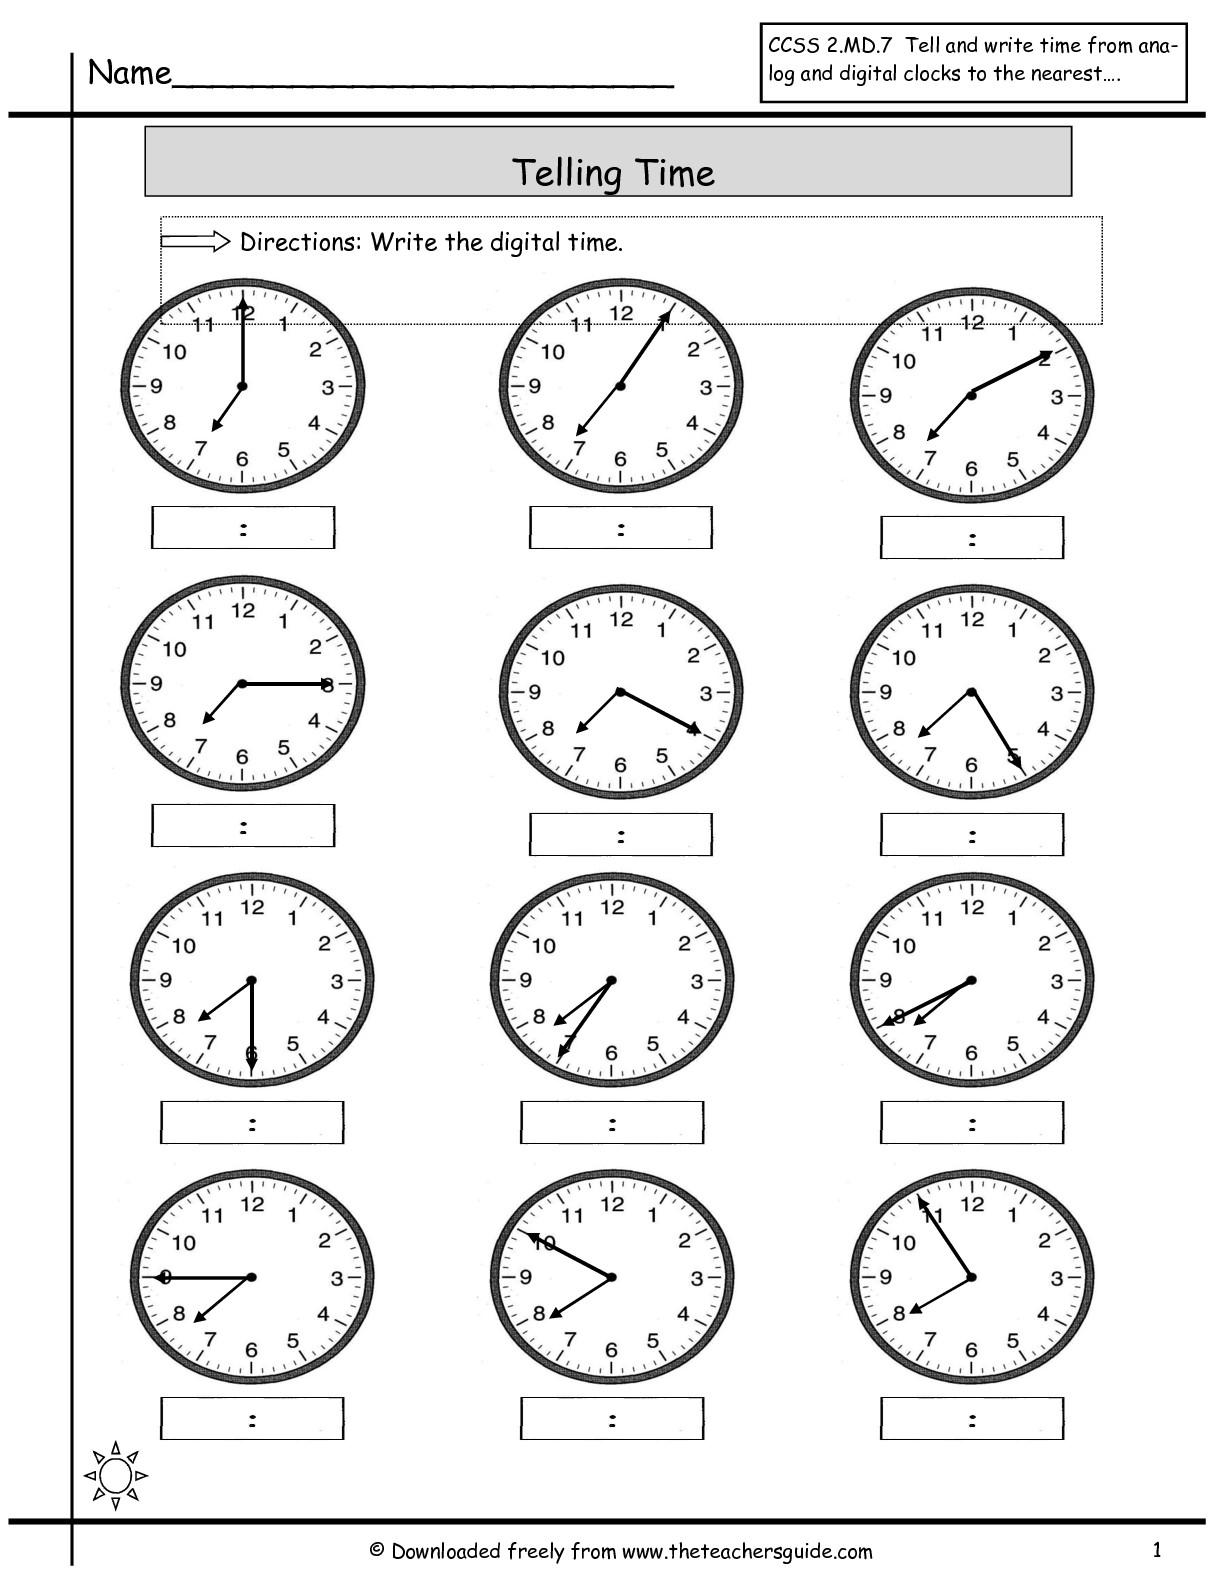 Telling Time Worksheets For Preschool  489293